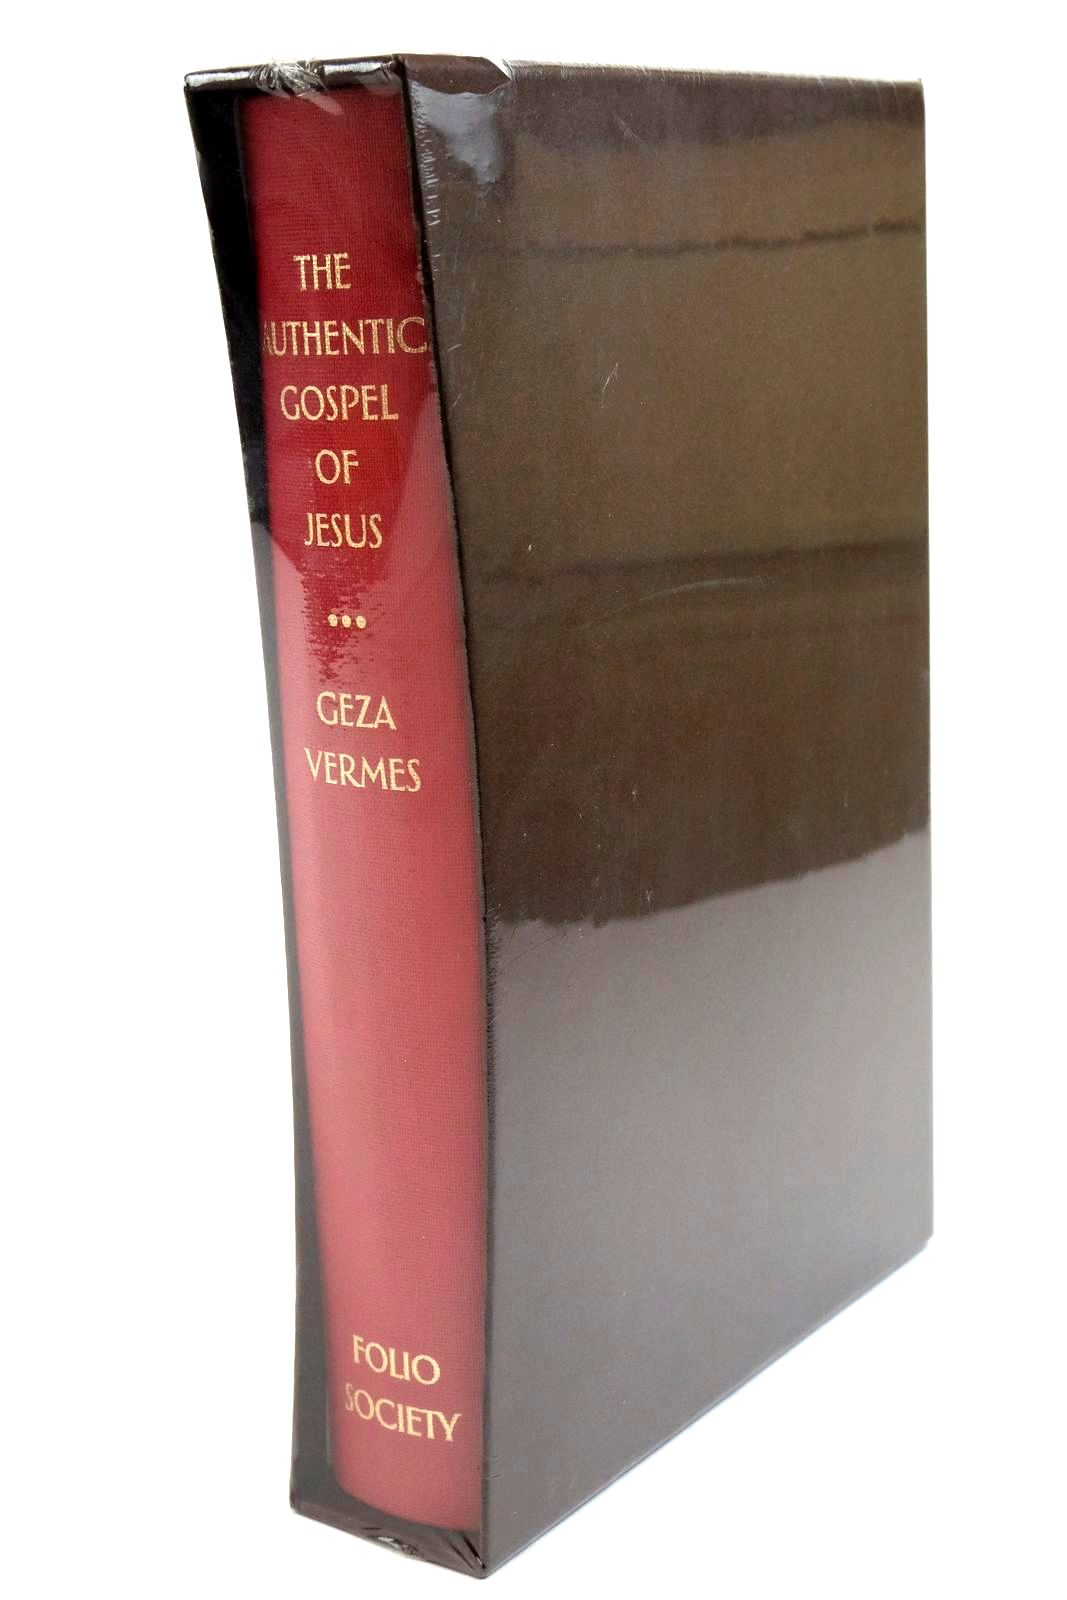 Photo of THE  AUTHENTIC GOSPEL OF JESUS written by Vermes, Geza published by Folio Society (STOCK CODE: 1321726)  for sale by Stella & Rose's Books